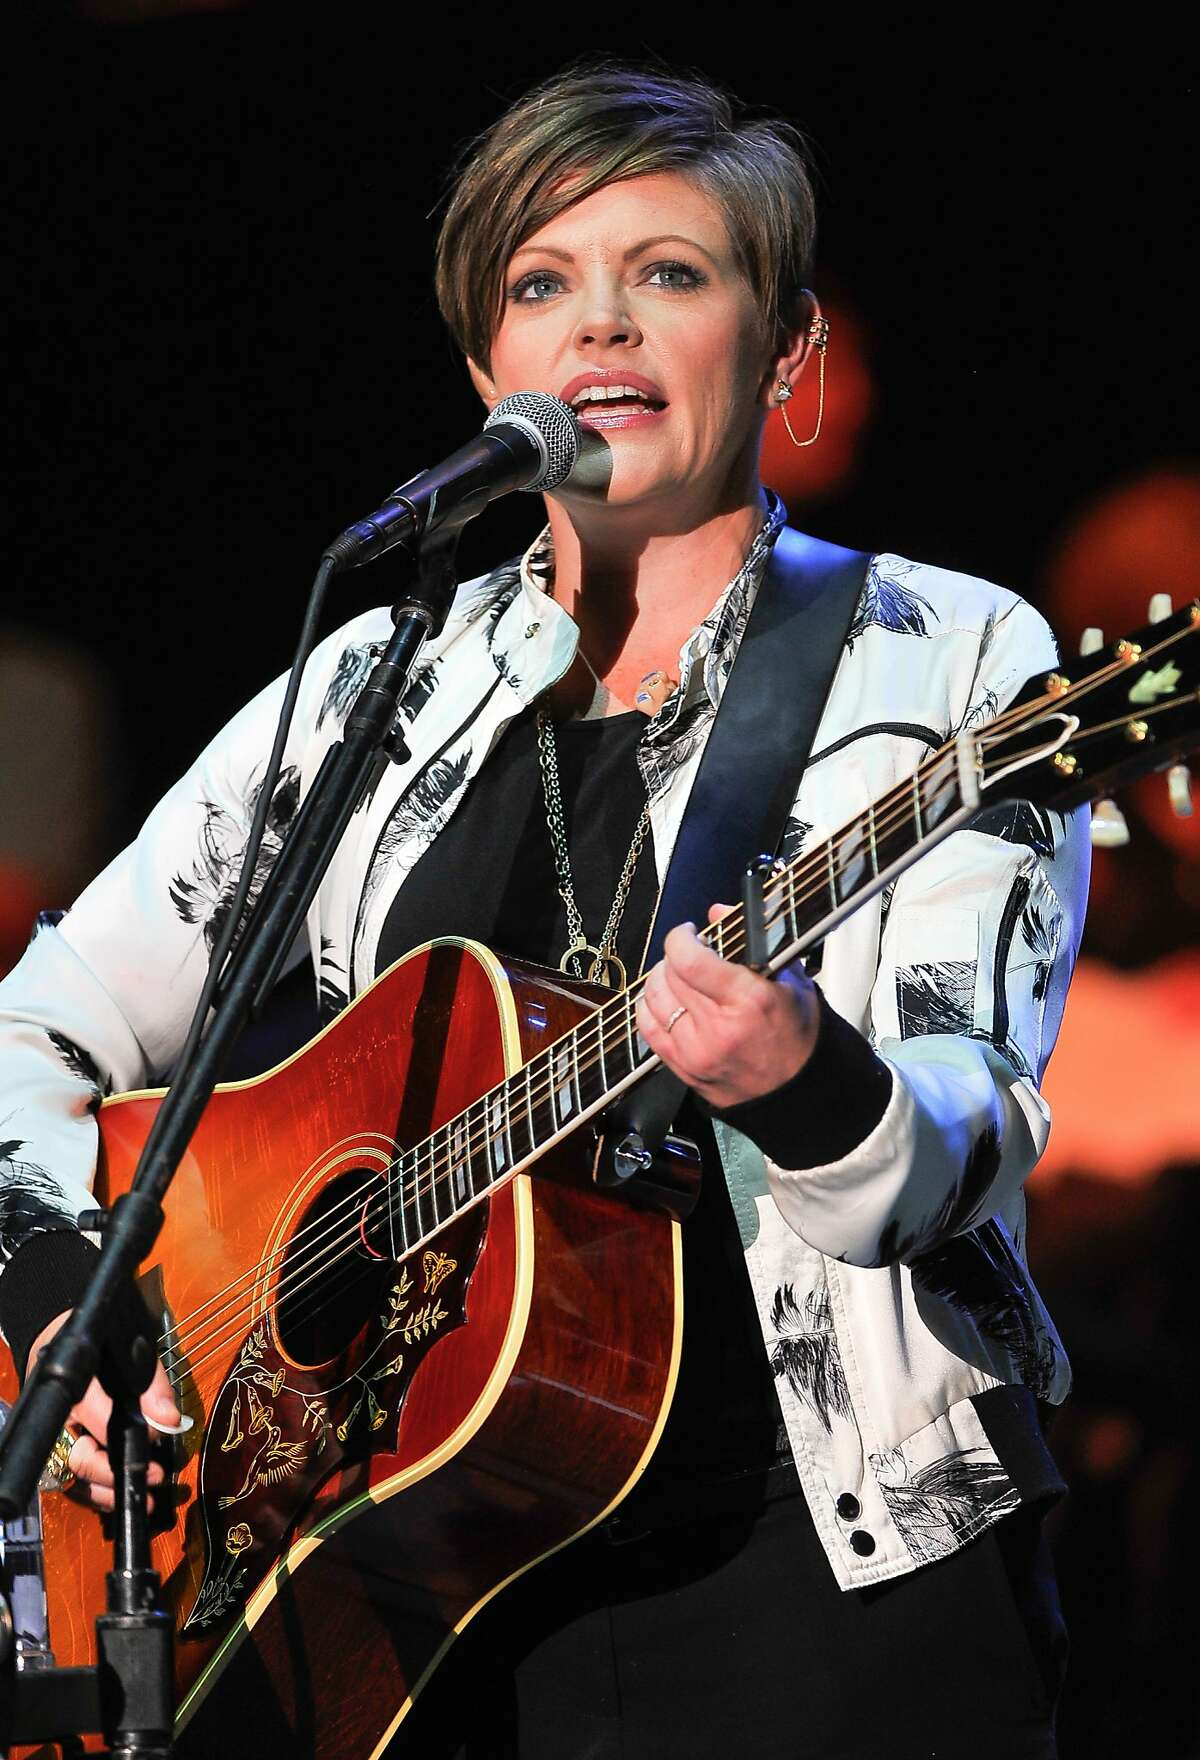 MOUNTAIN VIEW, CA - OCTOBER 25: Natalie Maines of Dixie Chicks performs at the 29th Annual Bridge School Benefit concert at Shoreline Amphitheatre on October 25, 2015 in Mountain View, California. (Photo by Steve Jennings/WireImage)